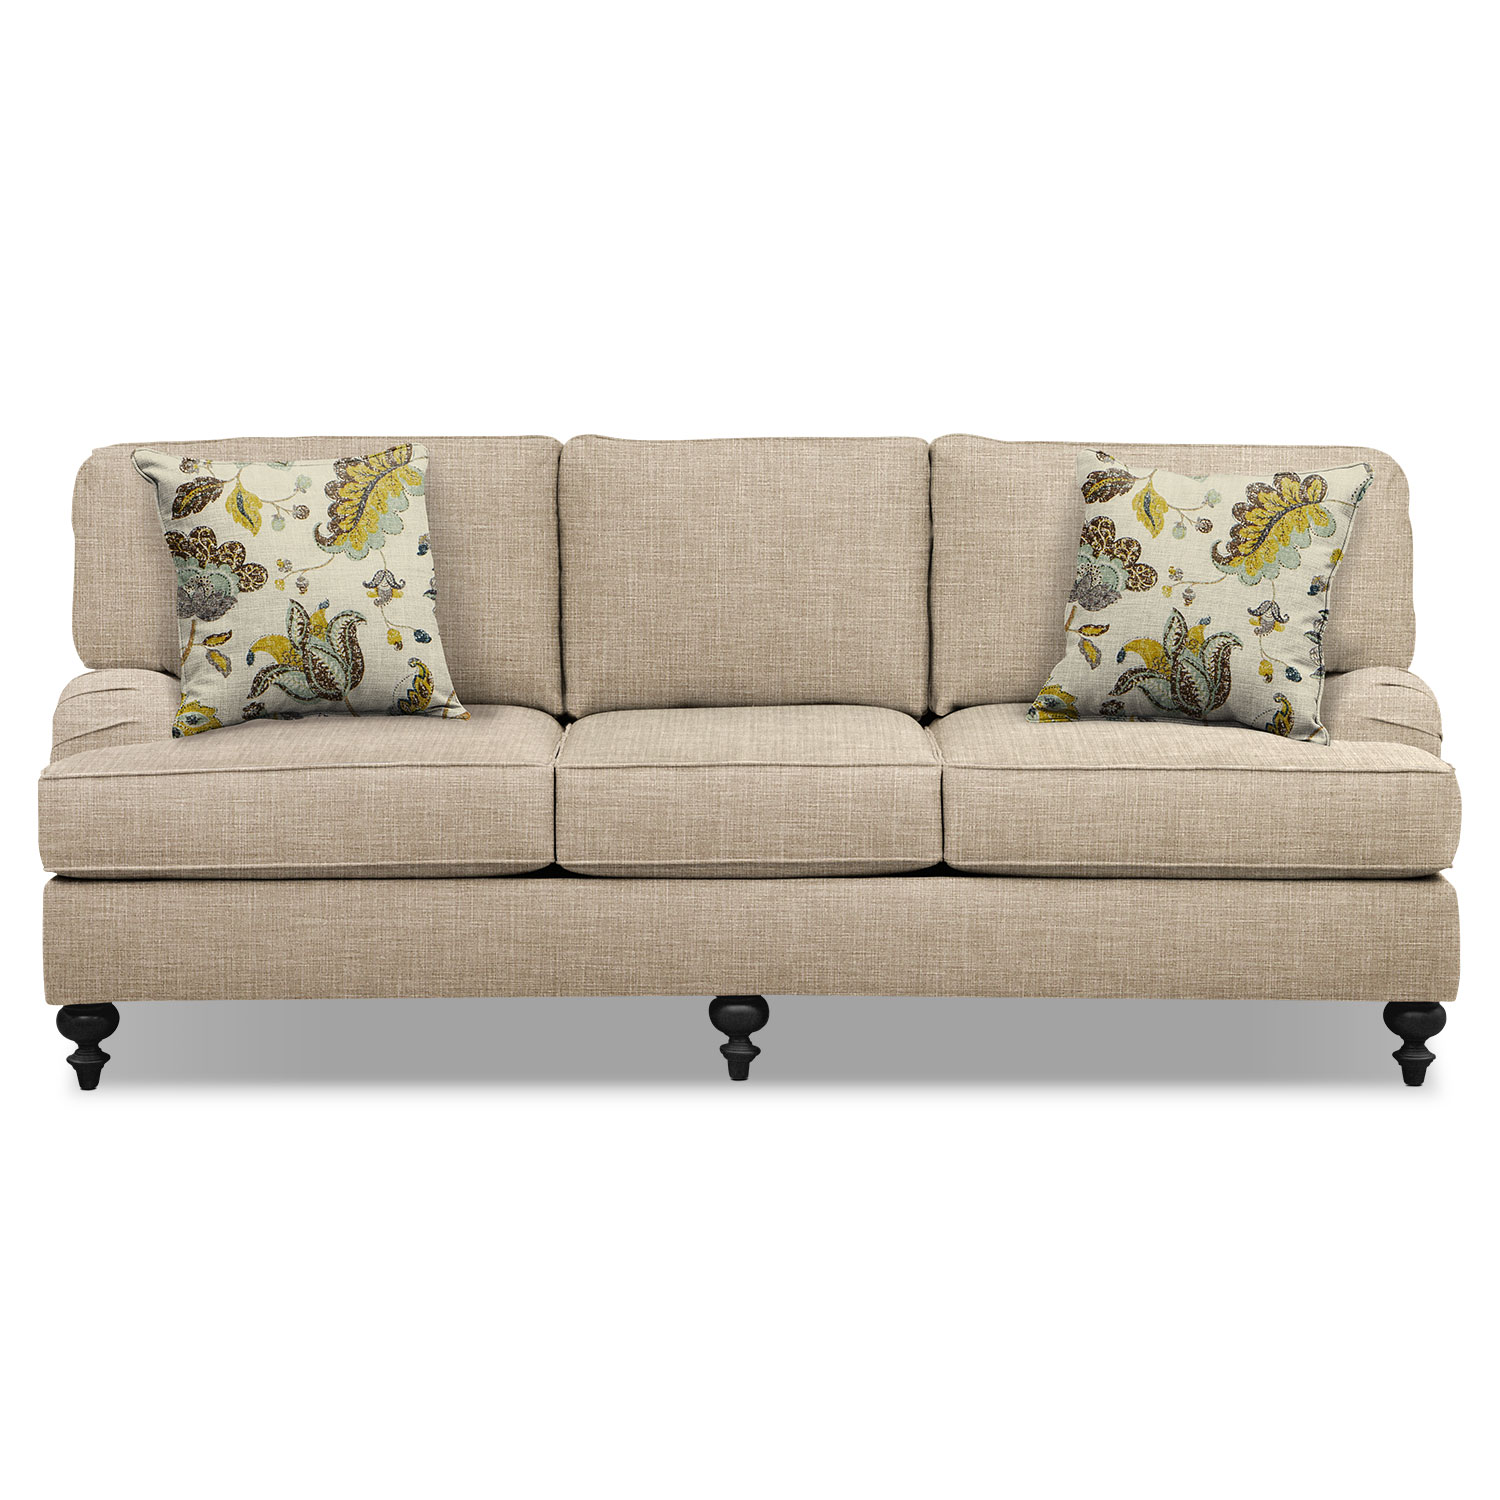 furniture collections huffman koos loveseat under ls loveseats swank